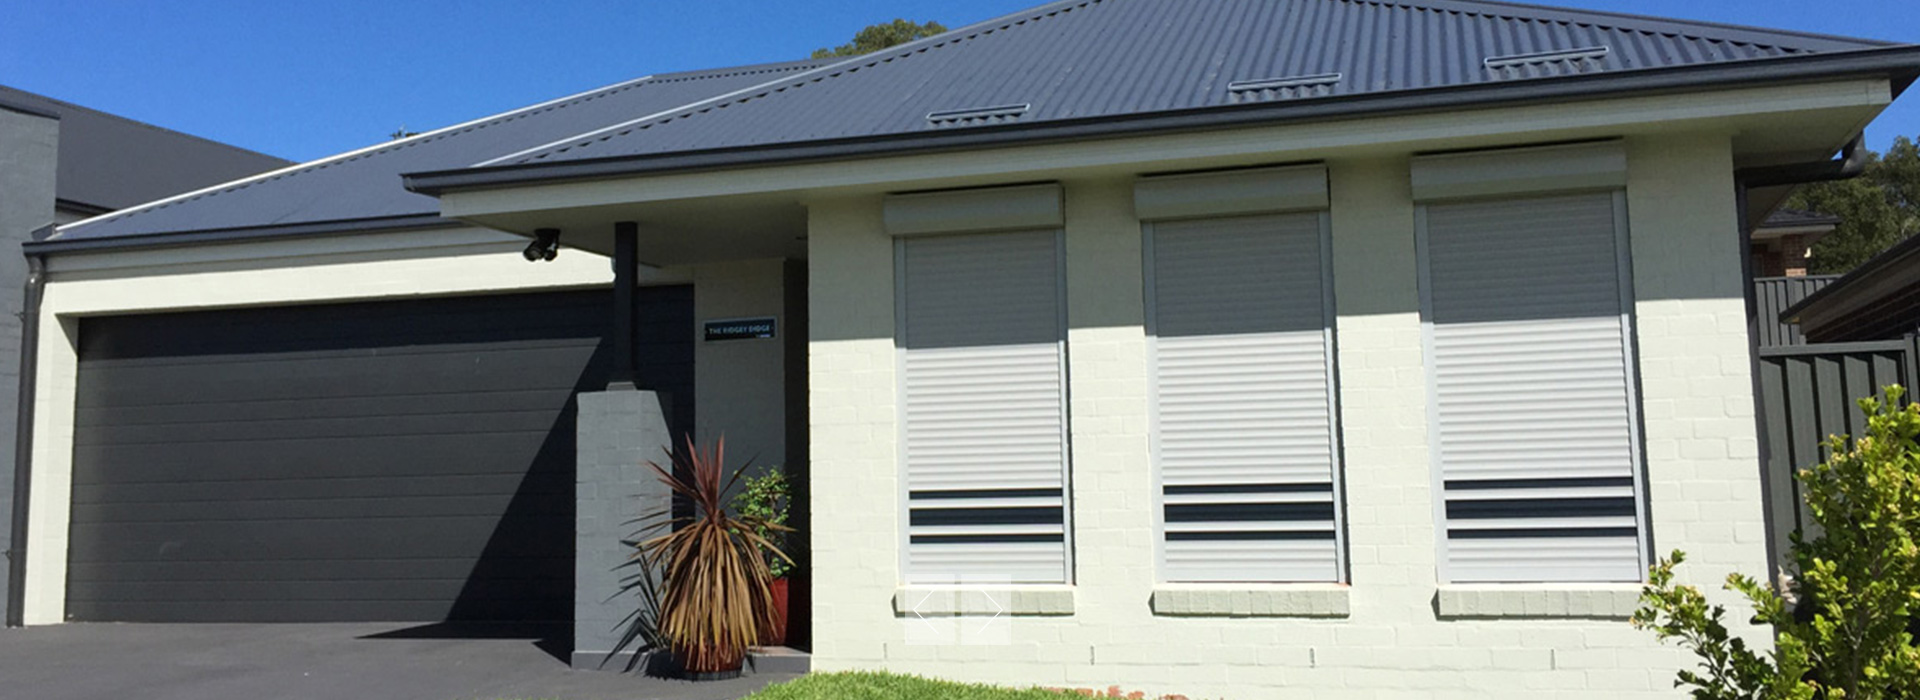 Bushfire Rated Roller Shutters Gordon